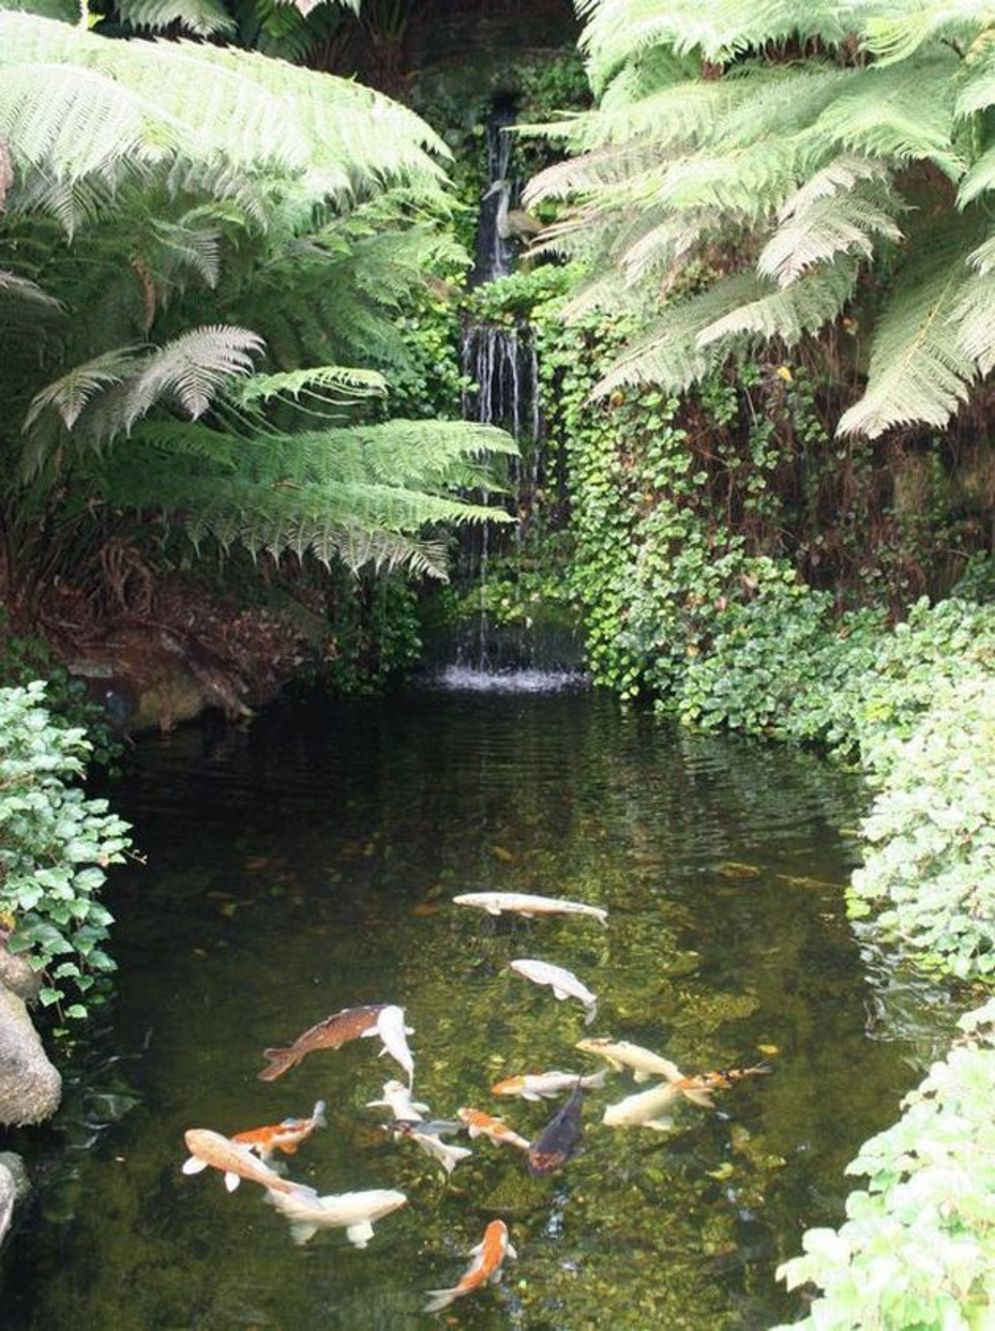 Water garden ideas for more natural backyard feeling with beautiful aquatic plants and ponds Image 24